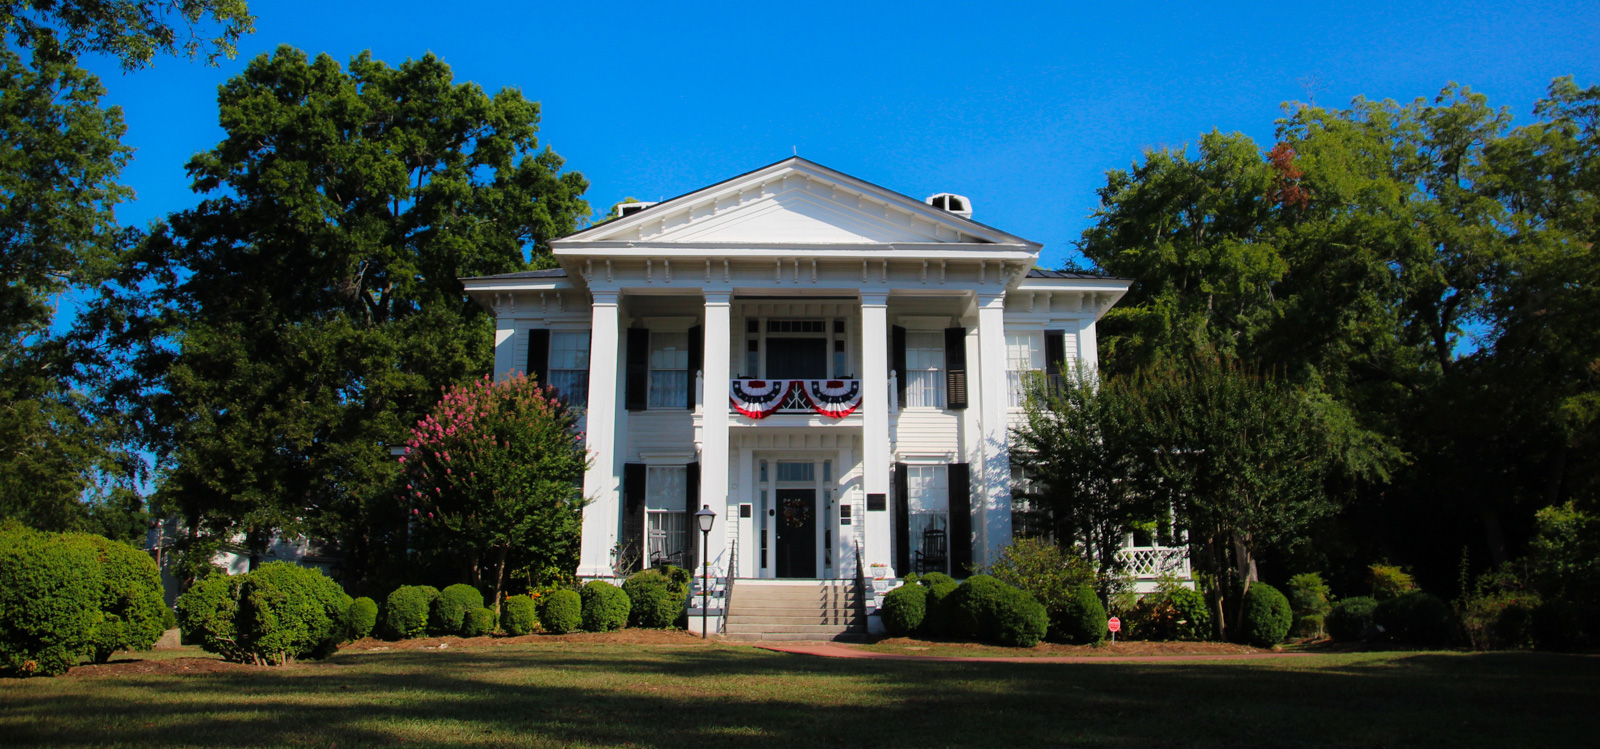 Step back into the history of the Old South.